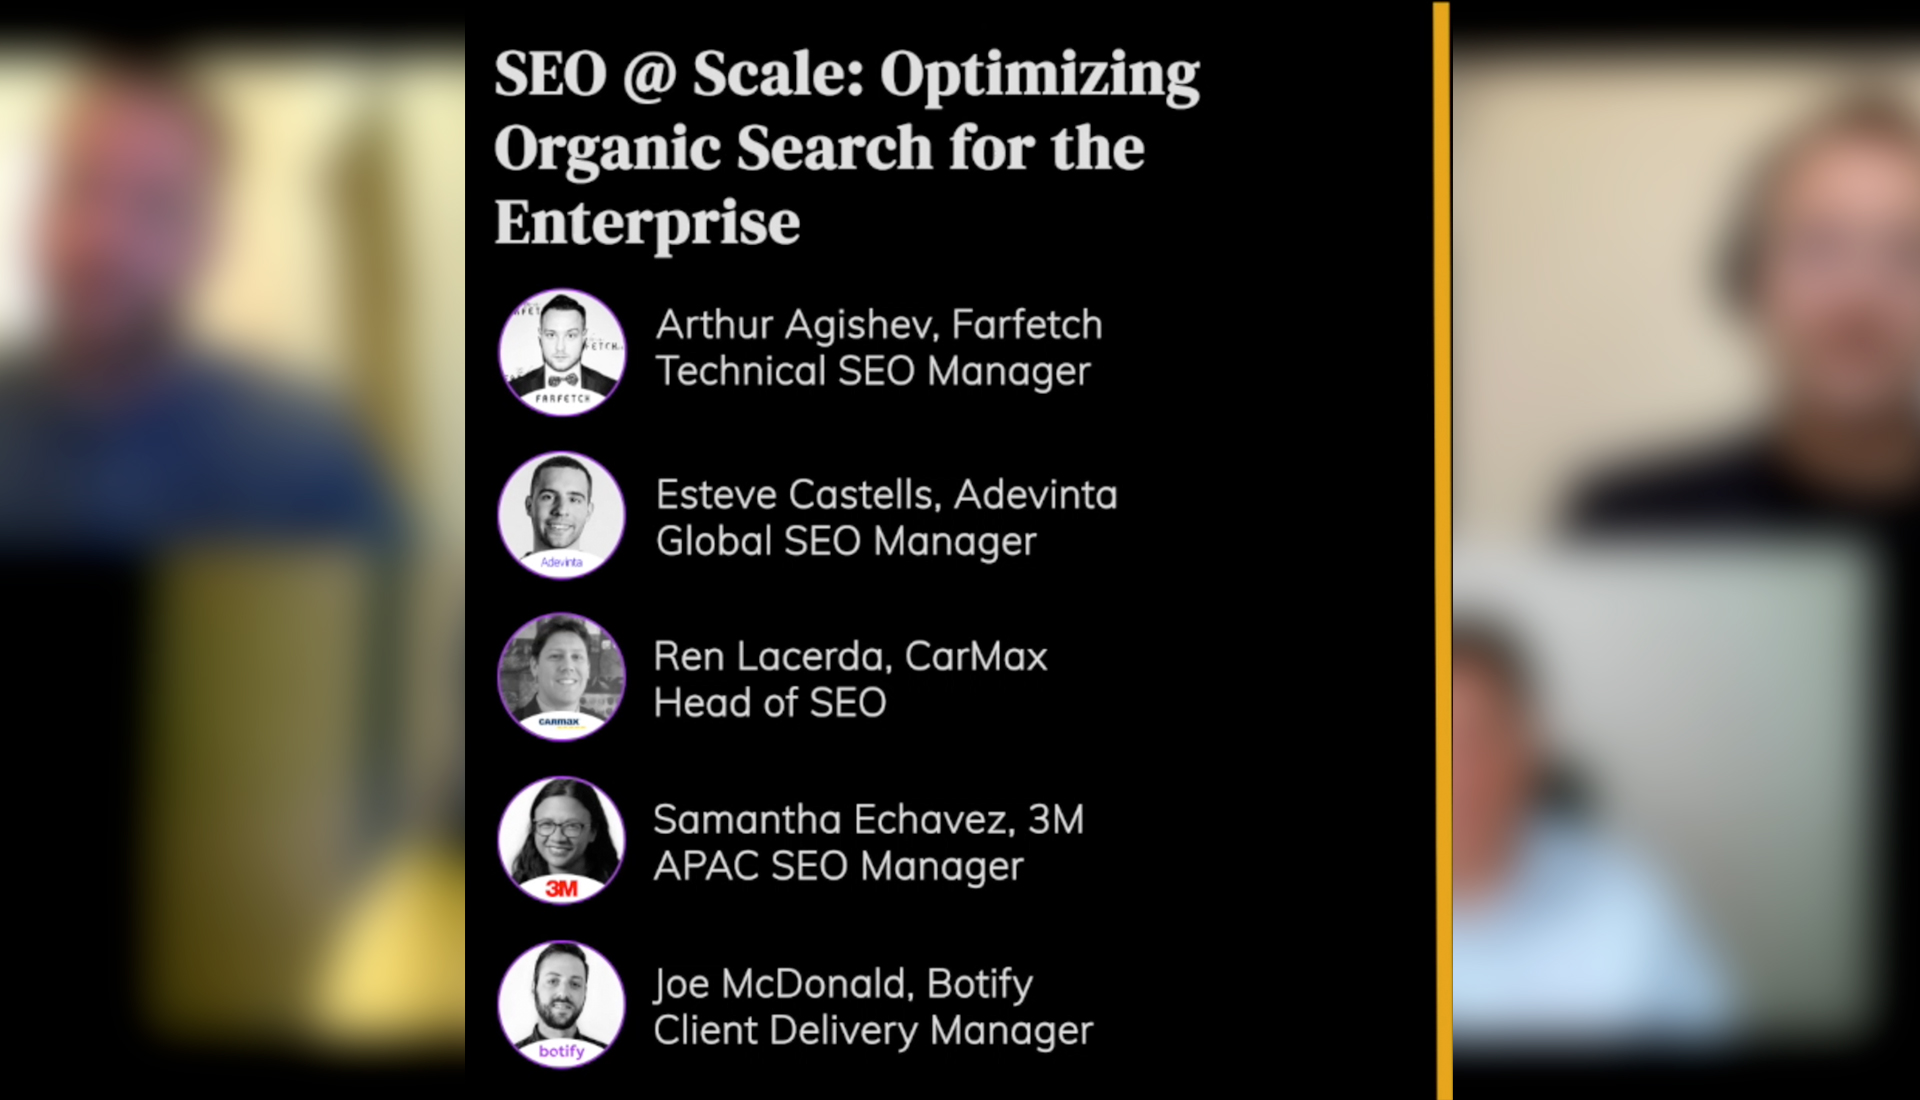 SEO @ Scale: Optimizing Organic Search for the Enterprise